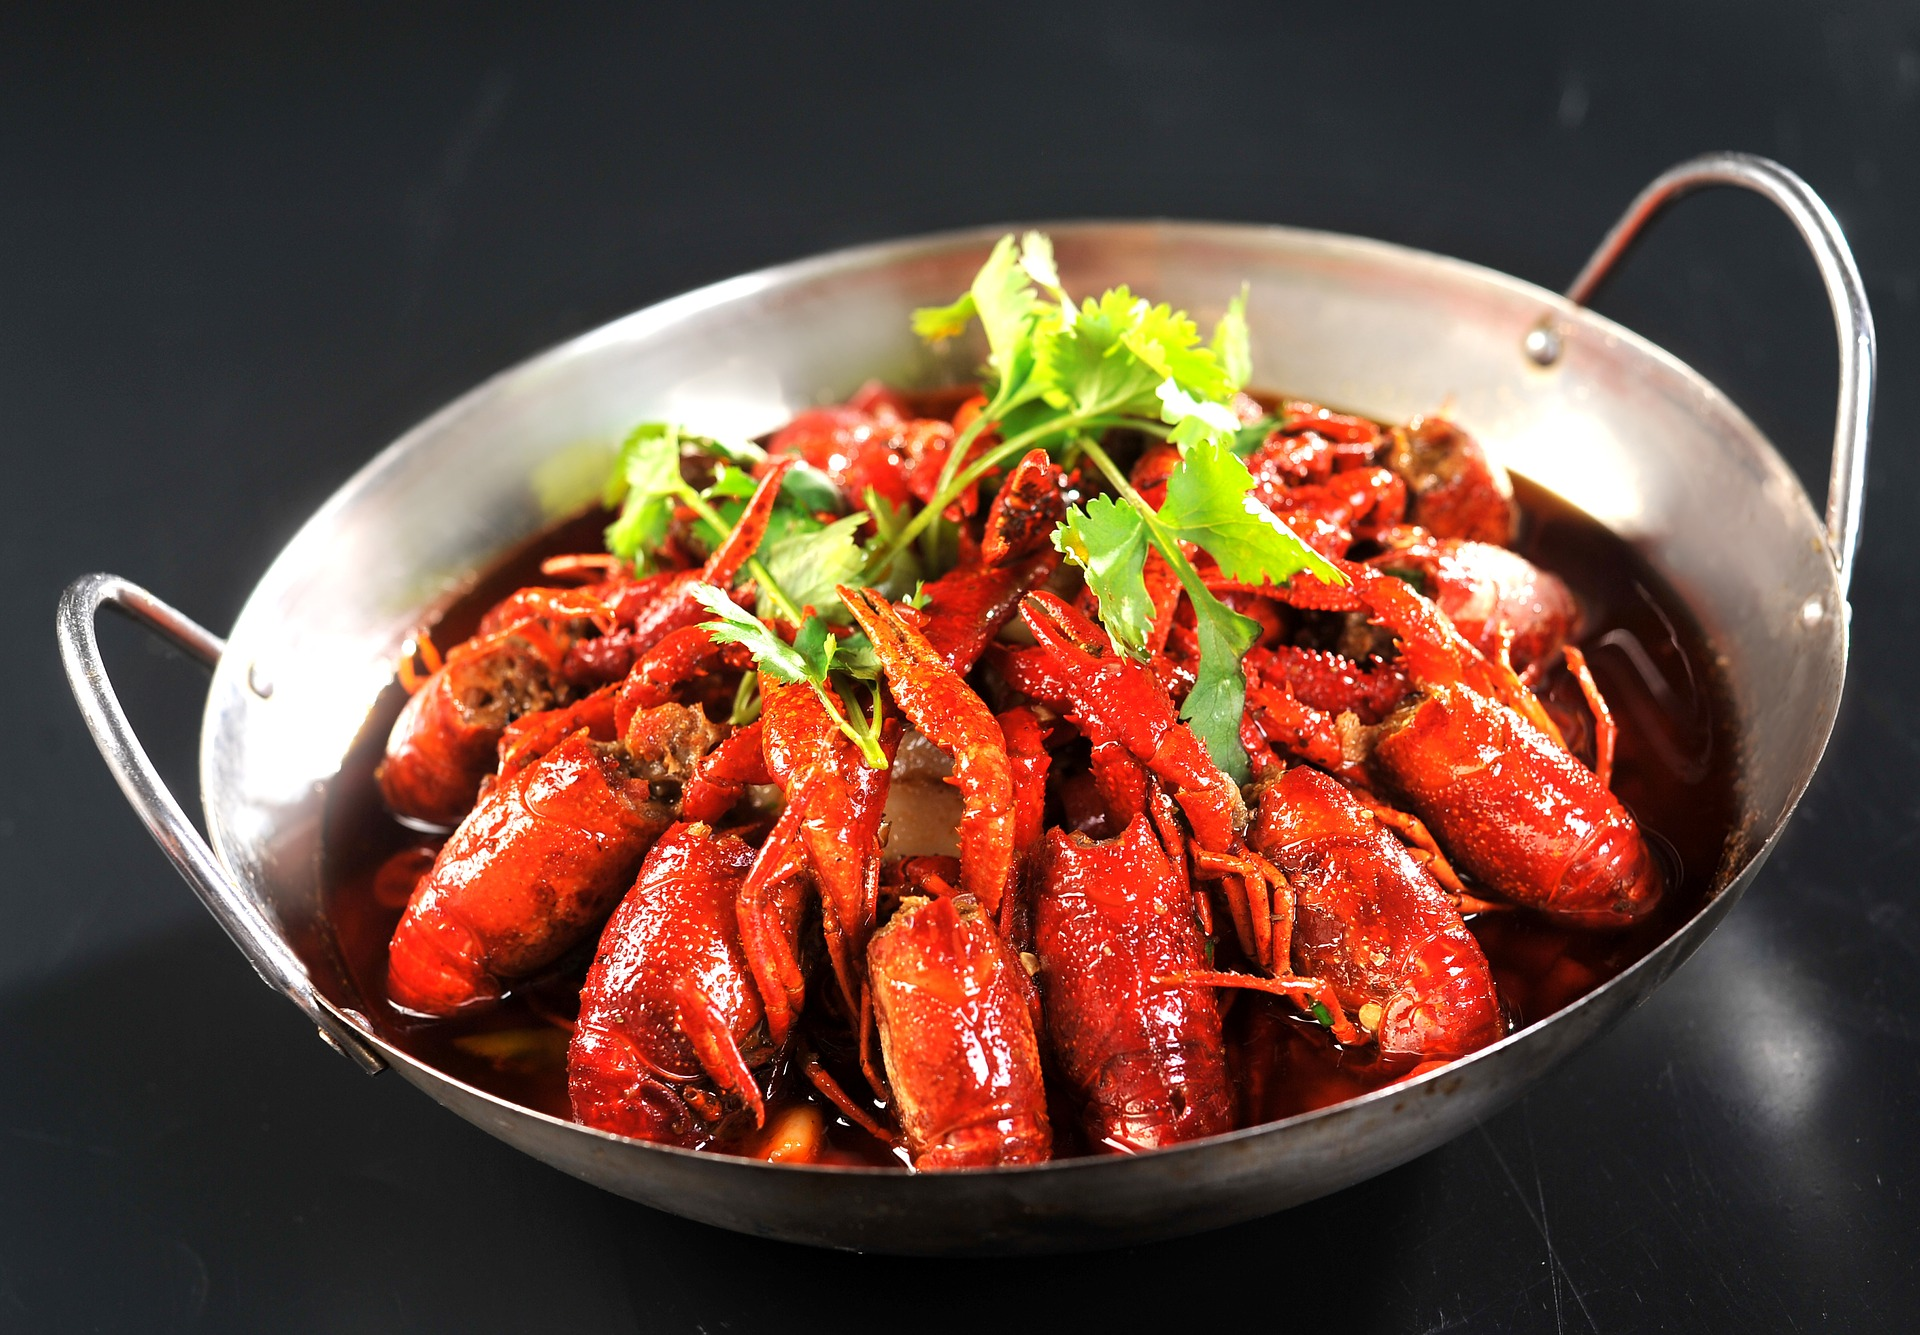 Food - Hunan cuisine is one of the handful of regional cuisines recognised as distinct and traditional in their own right. Hot peppers are the star of the show, and nearly always paired with garlic, shallots and seasonal produce. Fresh, exciting and bold, this is food that well and truly rivals China's best.